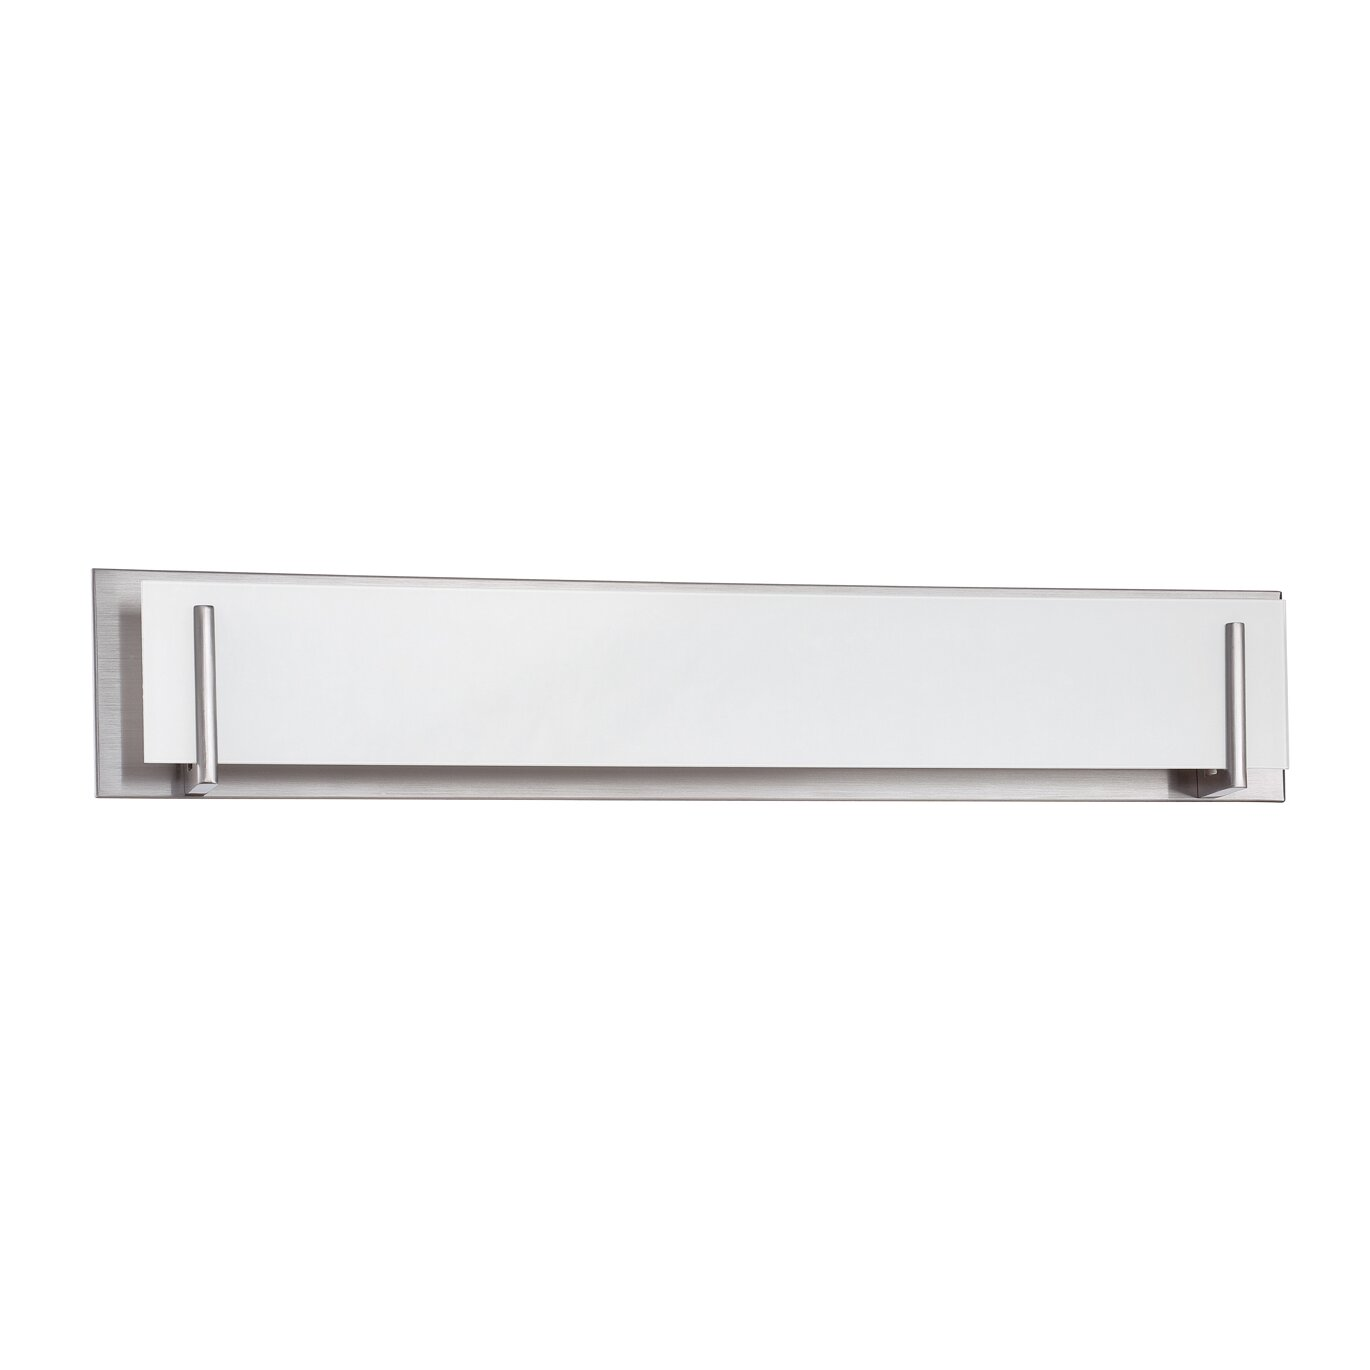 Kendal Lighting Aurora 6 Light Bath Vanity Light Reviews Wayfair